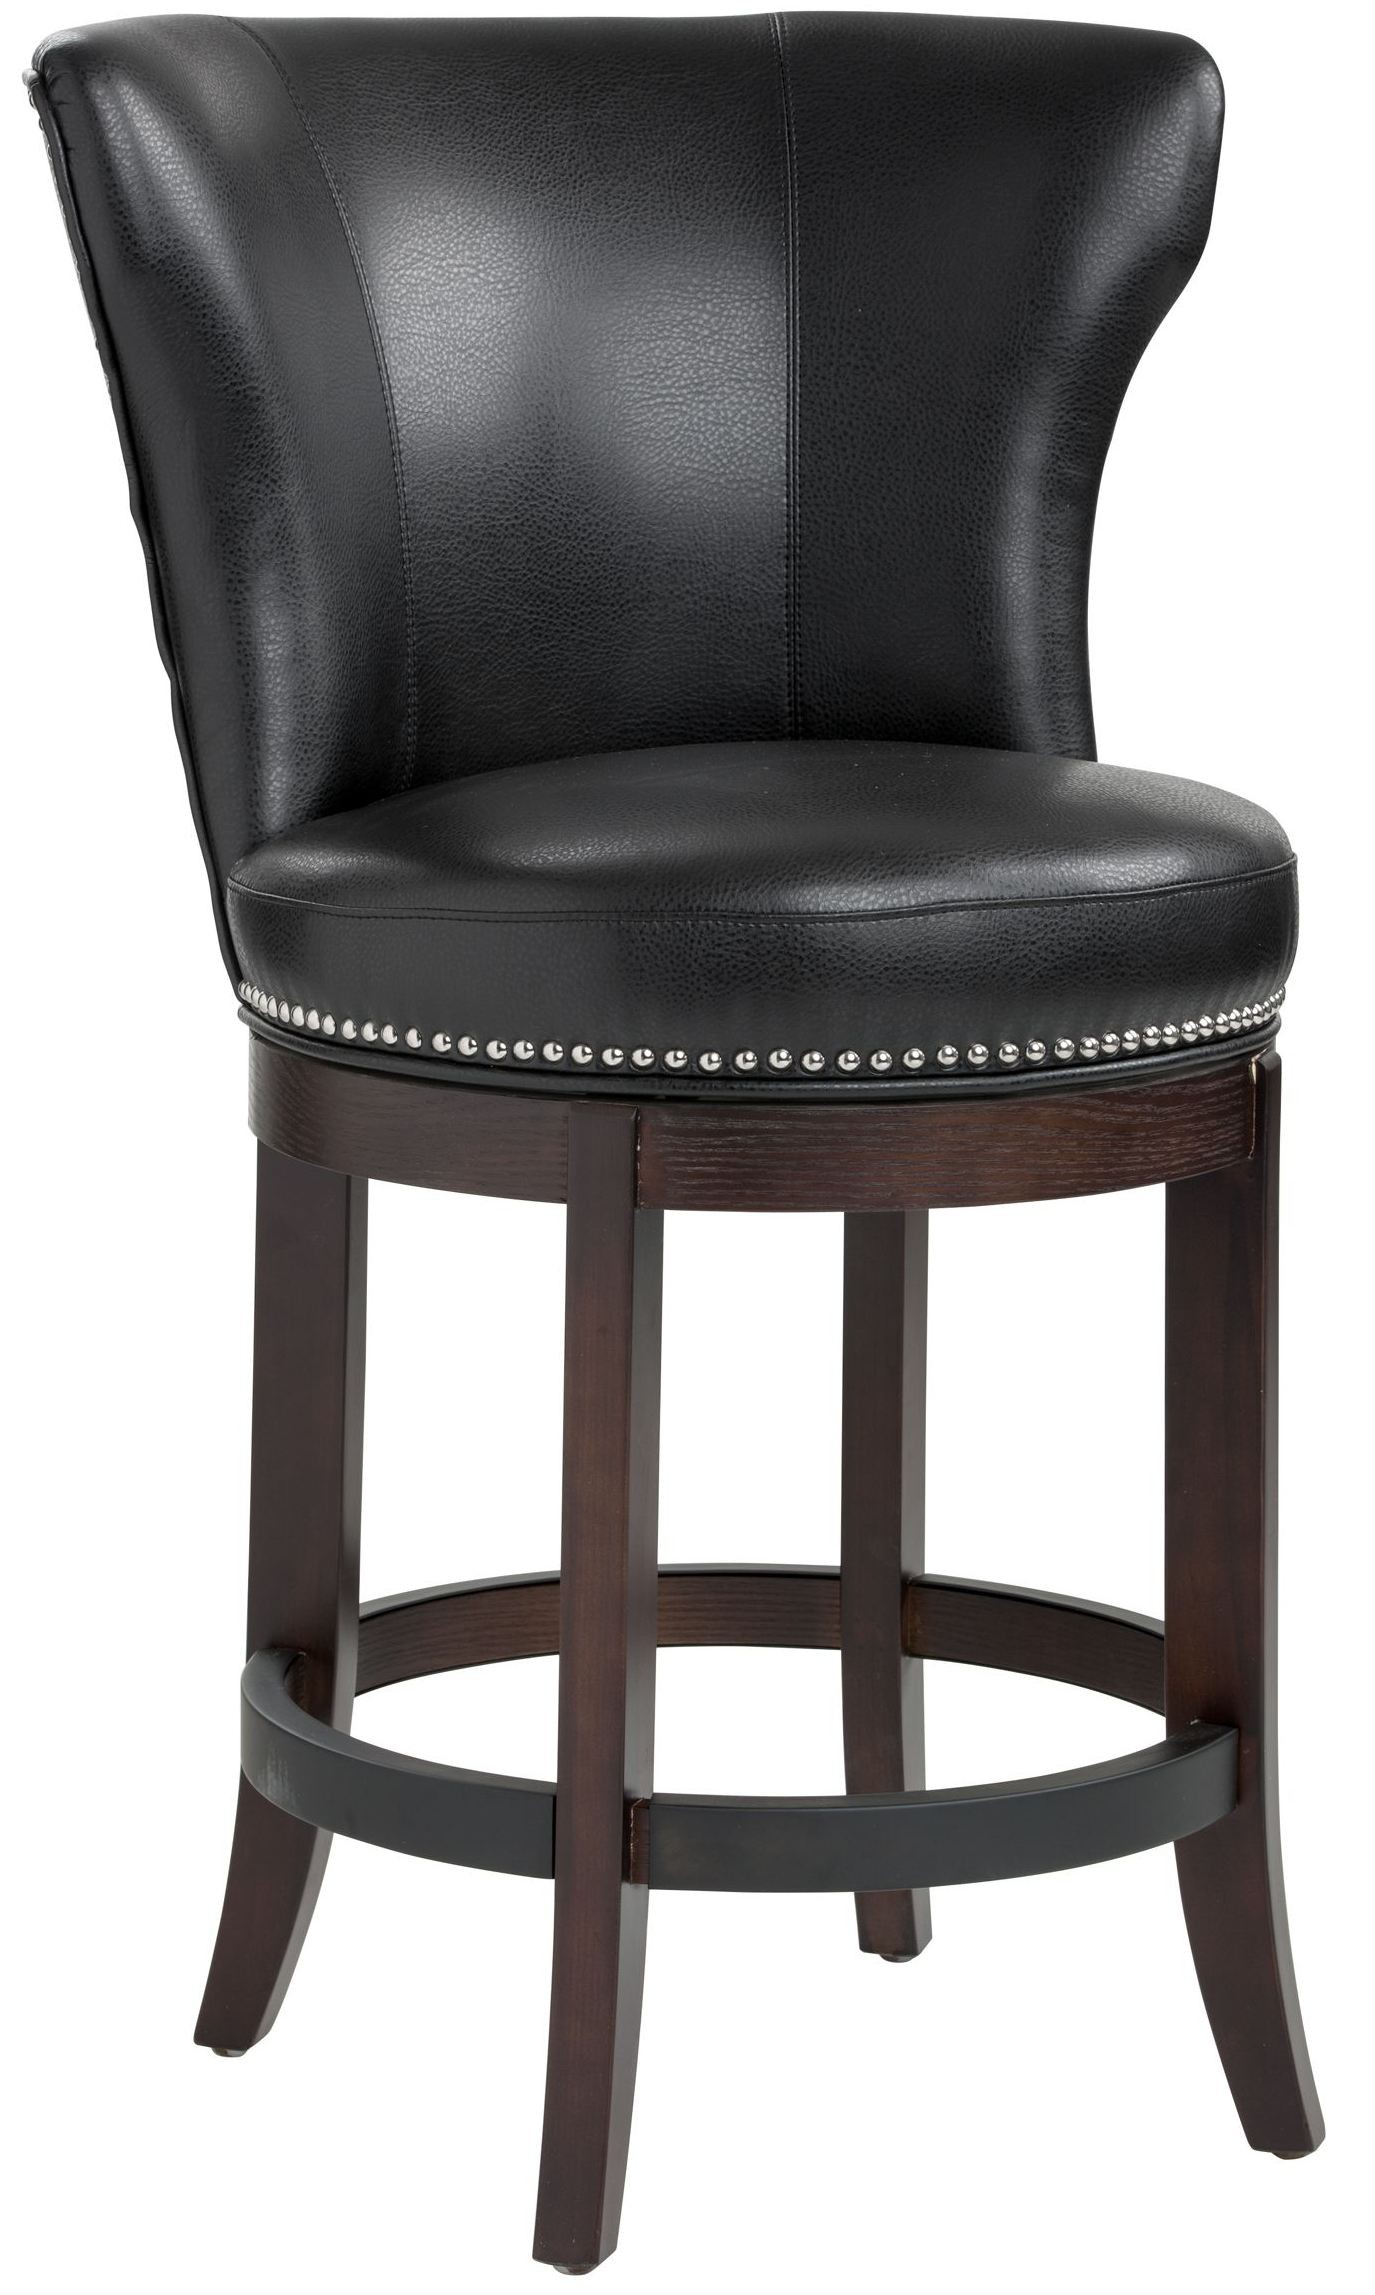 Tavern Black Leather Swivel Counter Stool From Sunpan Coleman Furniture